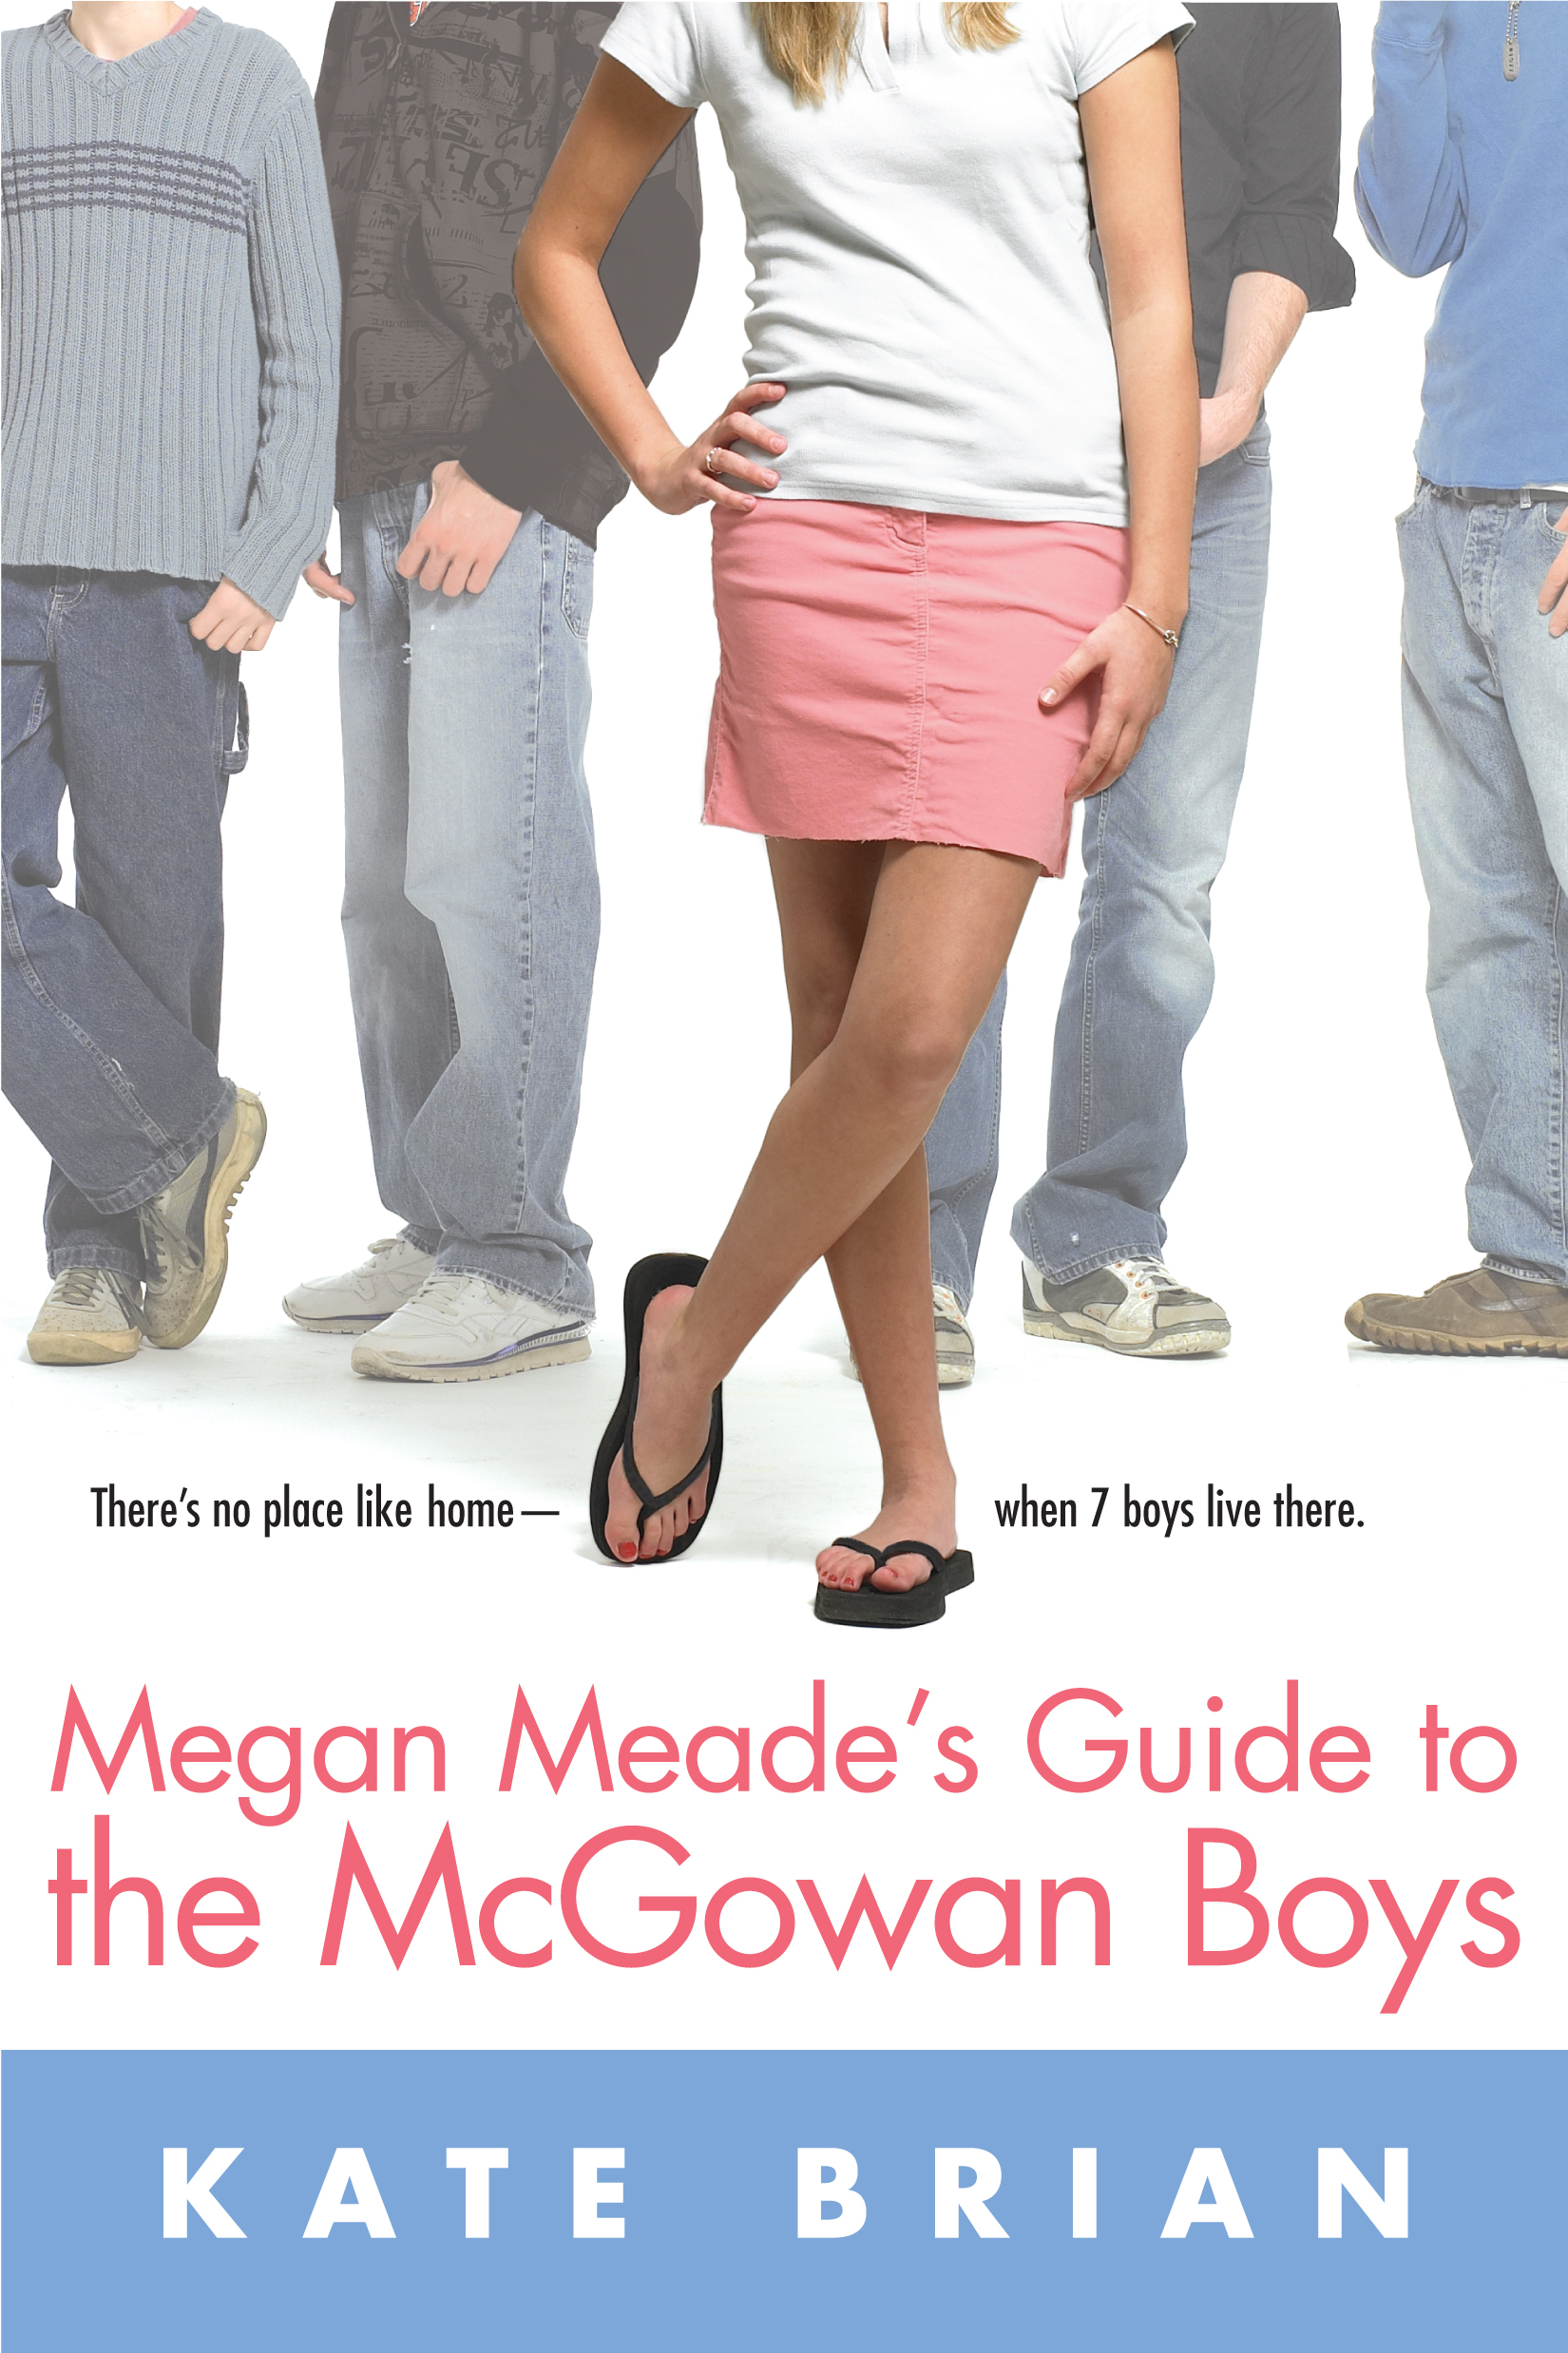 Image result for Megan Meade's Guide to the McGowan Boys